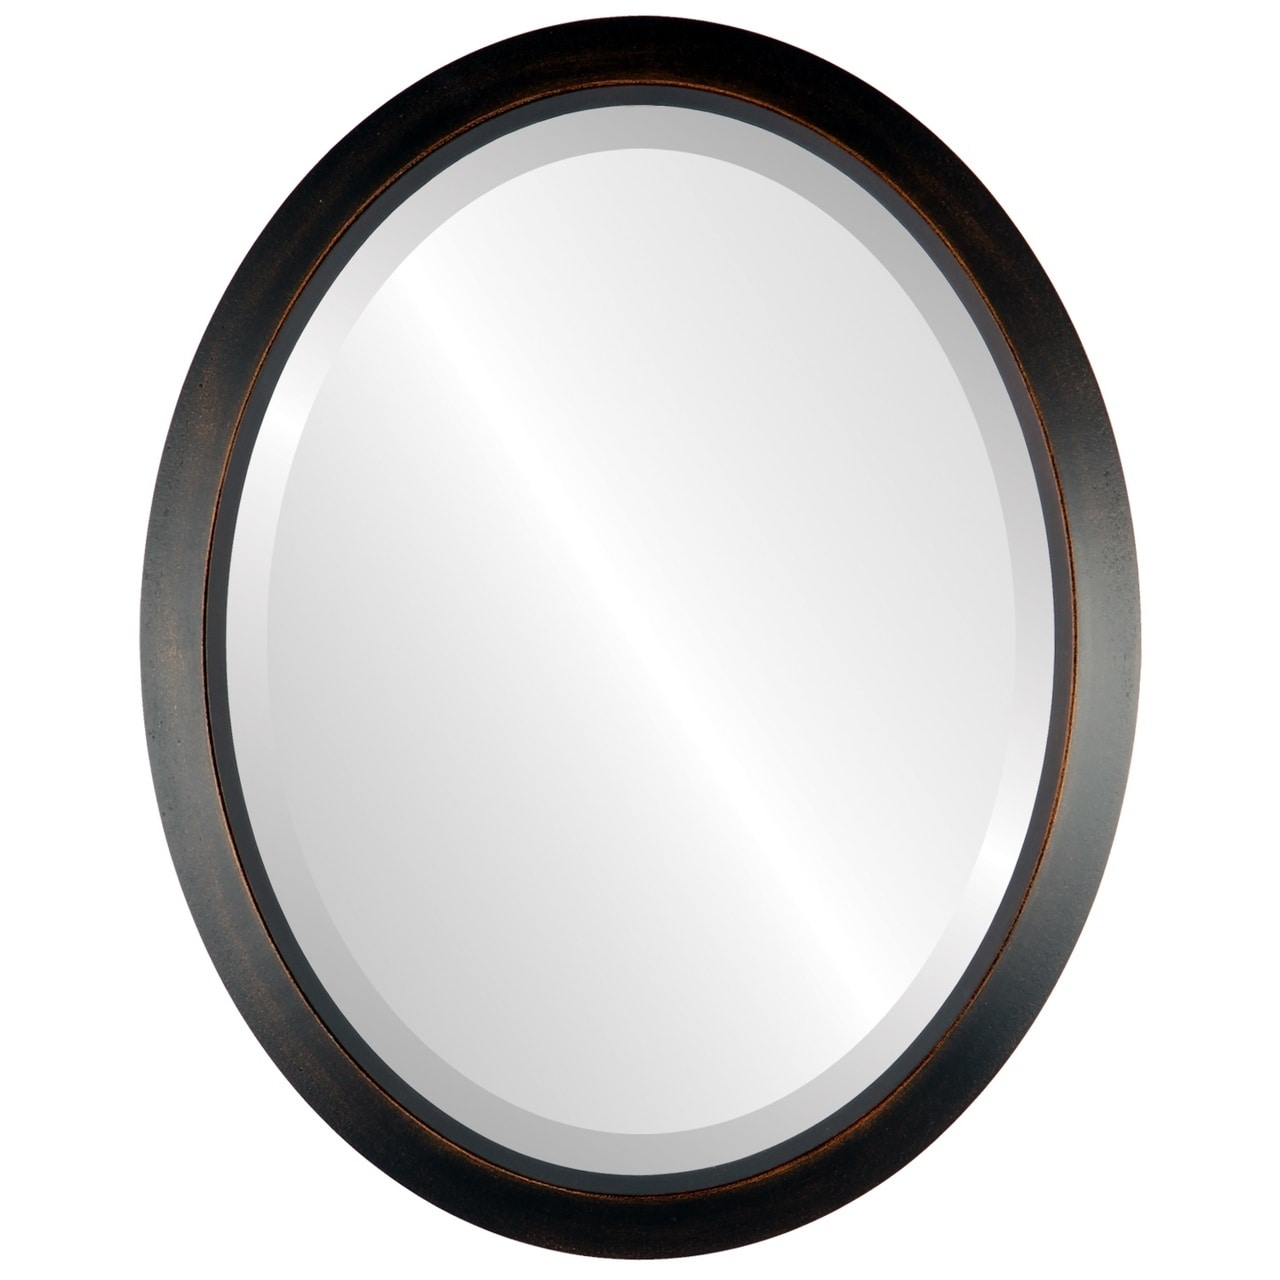 The Oval and Round Mirror Store Regatta Framed Oval Mirror in Rubbed Bronze Antique Bronze by Overstock